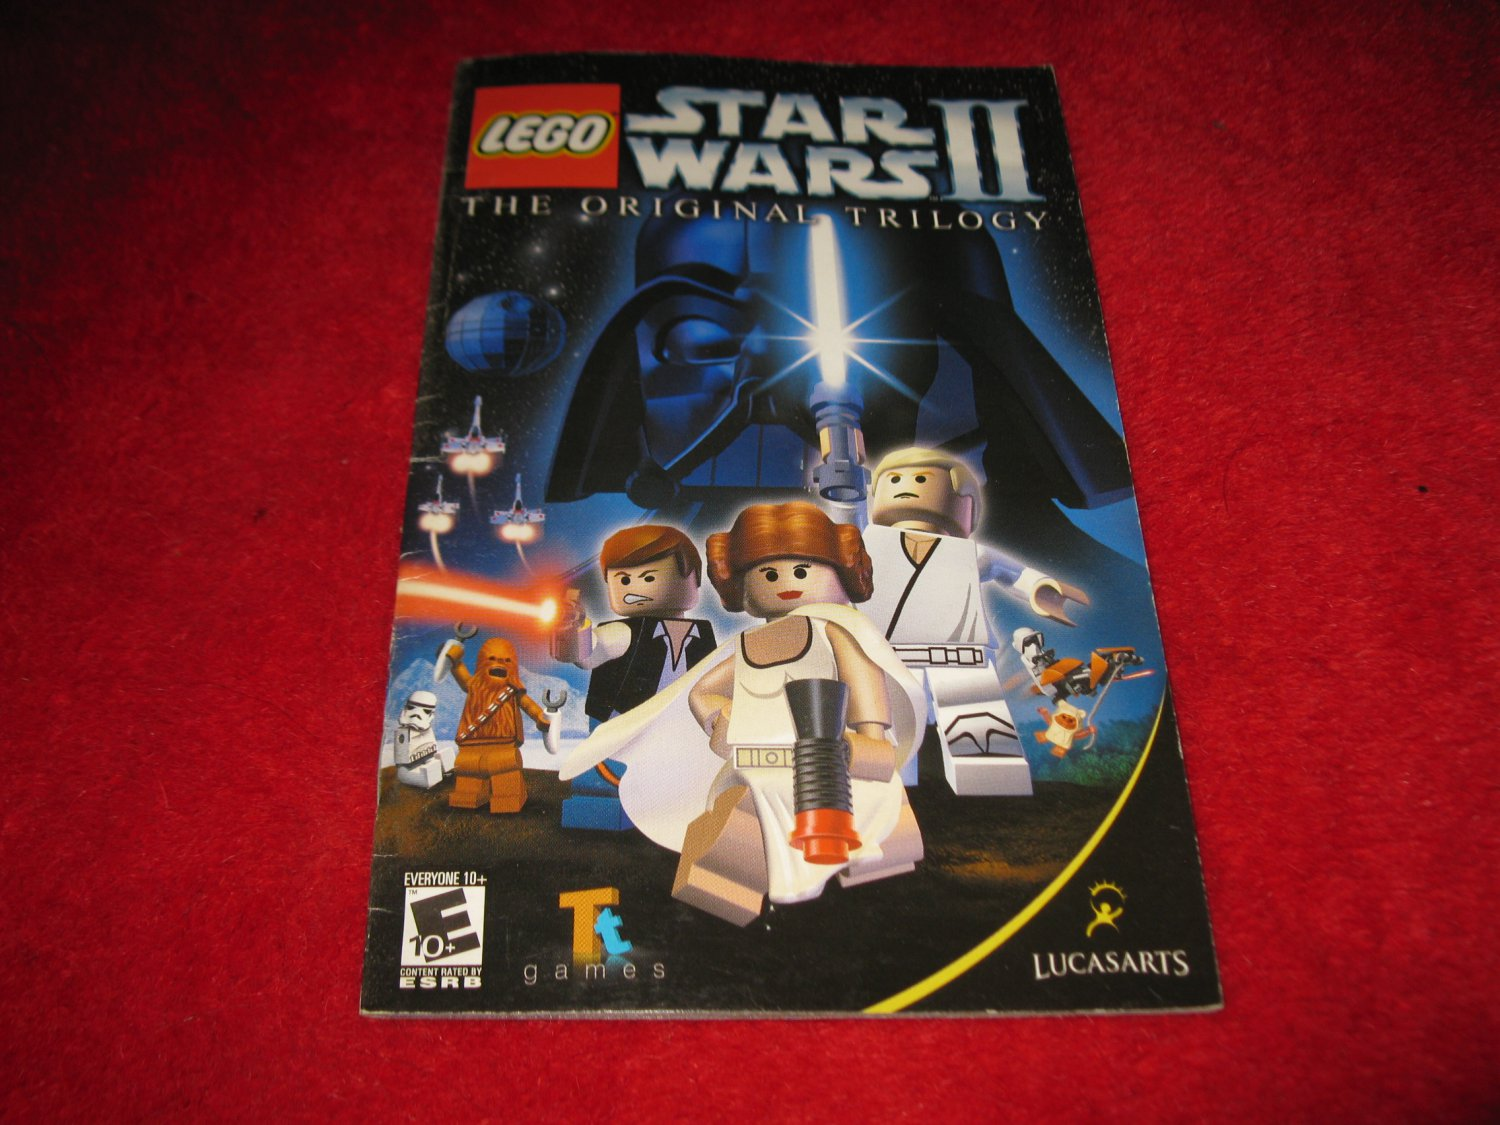 Lego Star Wars II , The Original Trilogy : Playstation 2 PS2 Video Game Instruction Booklet